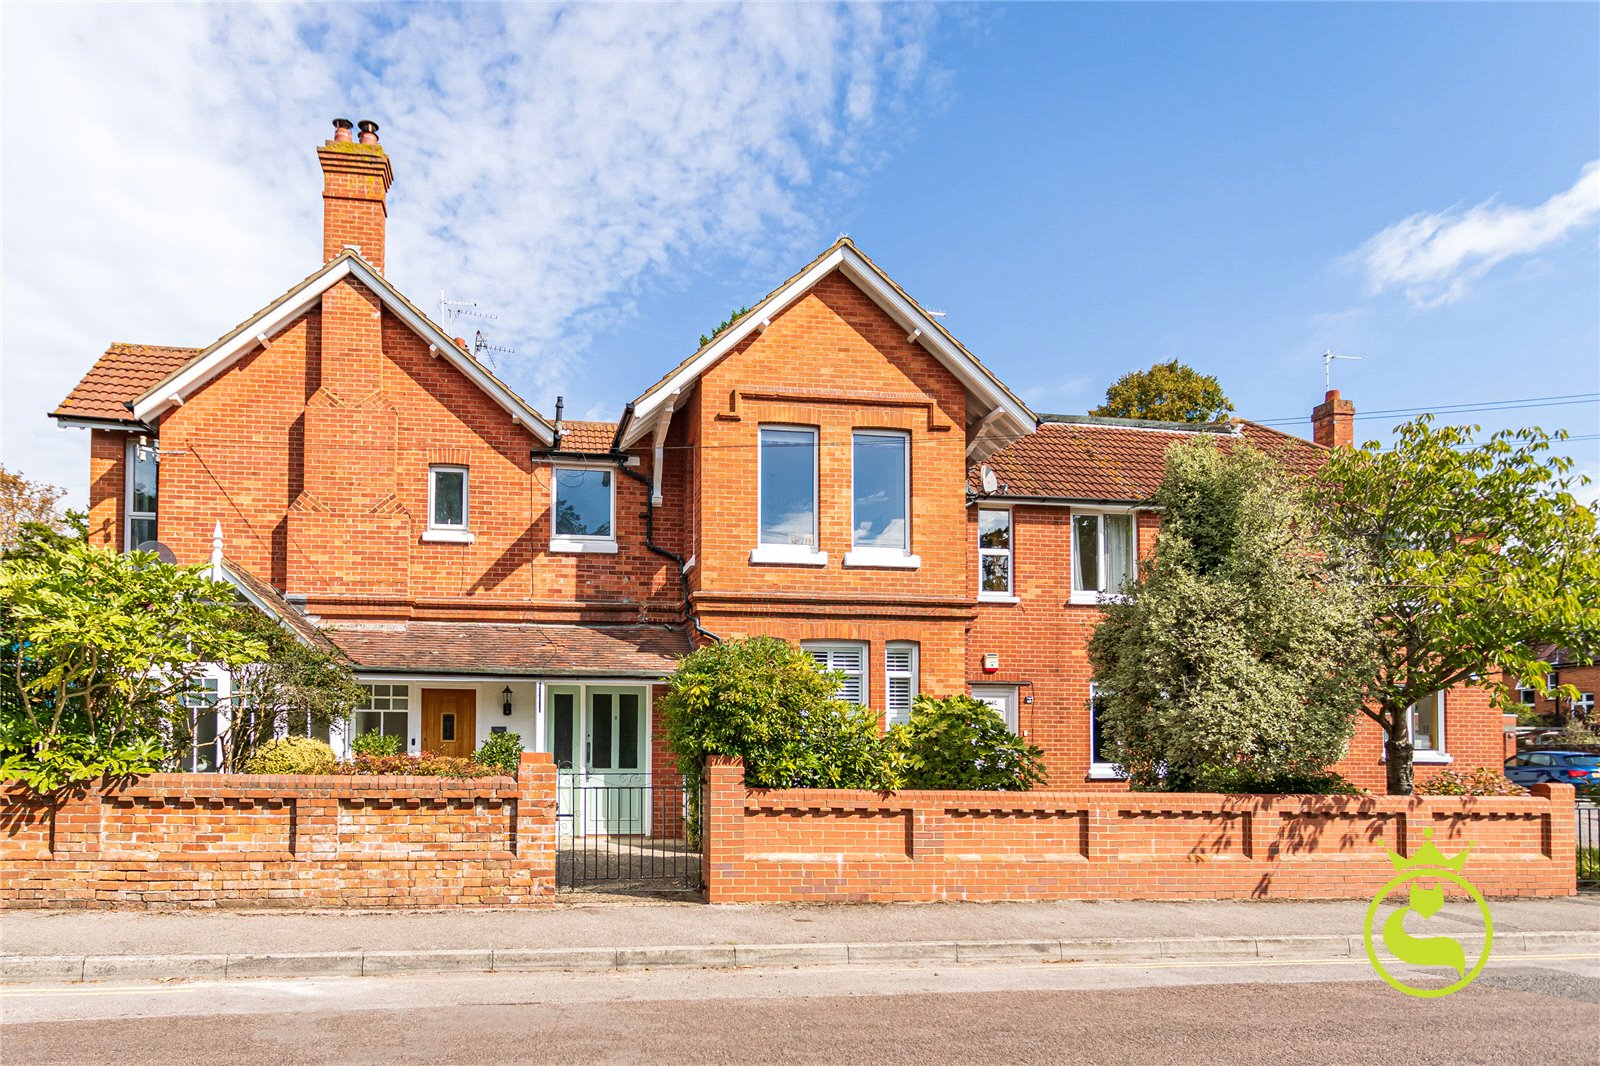 2 bed apartment for sale in Tower Road, Westbourne, BH13